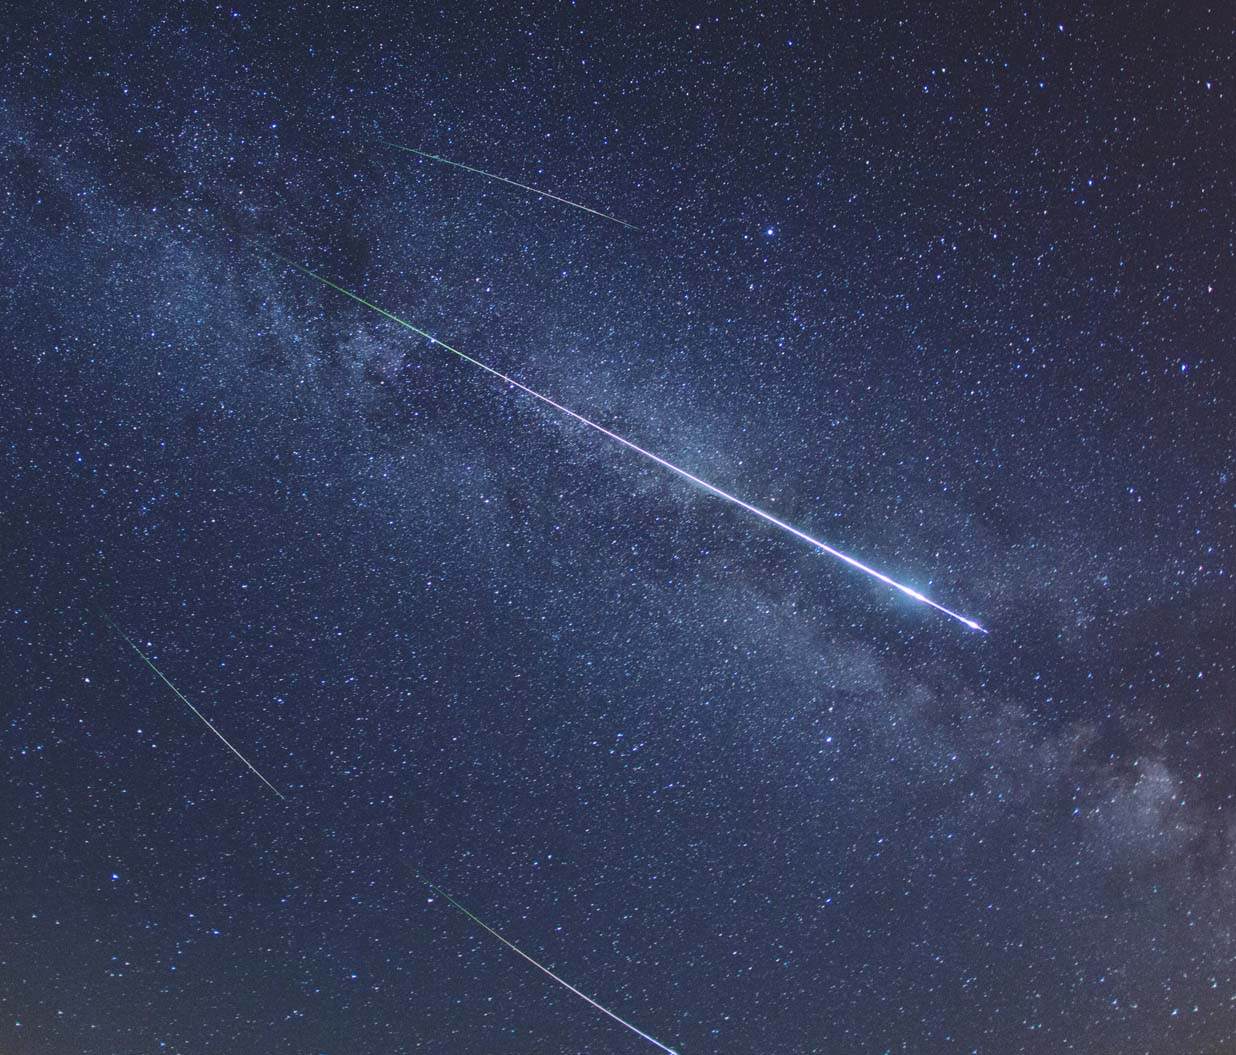 Annual Perseid meteor shower peaks this weekend